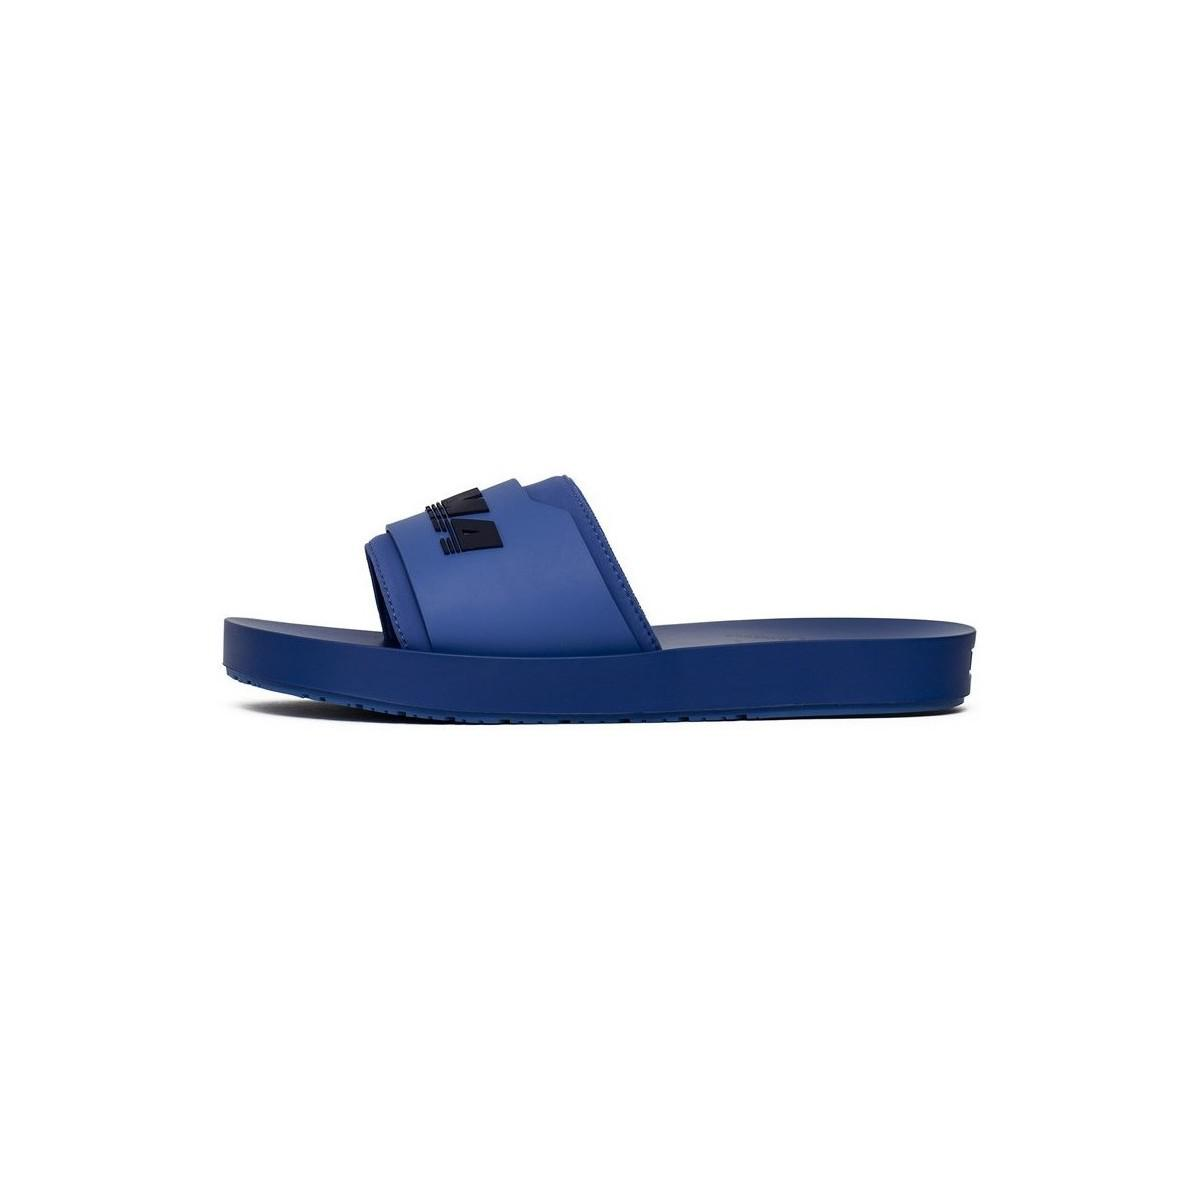 acb4153f081 Puma Fenty Surf Slide Wns By Rihanna Women's Mules / Casual Shoes In ...